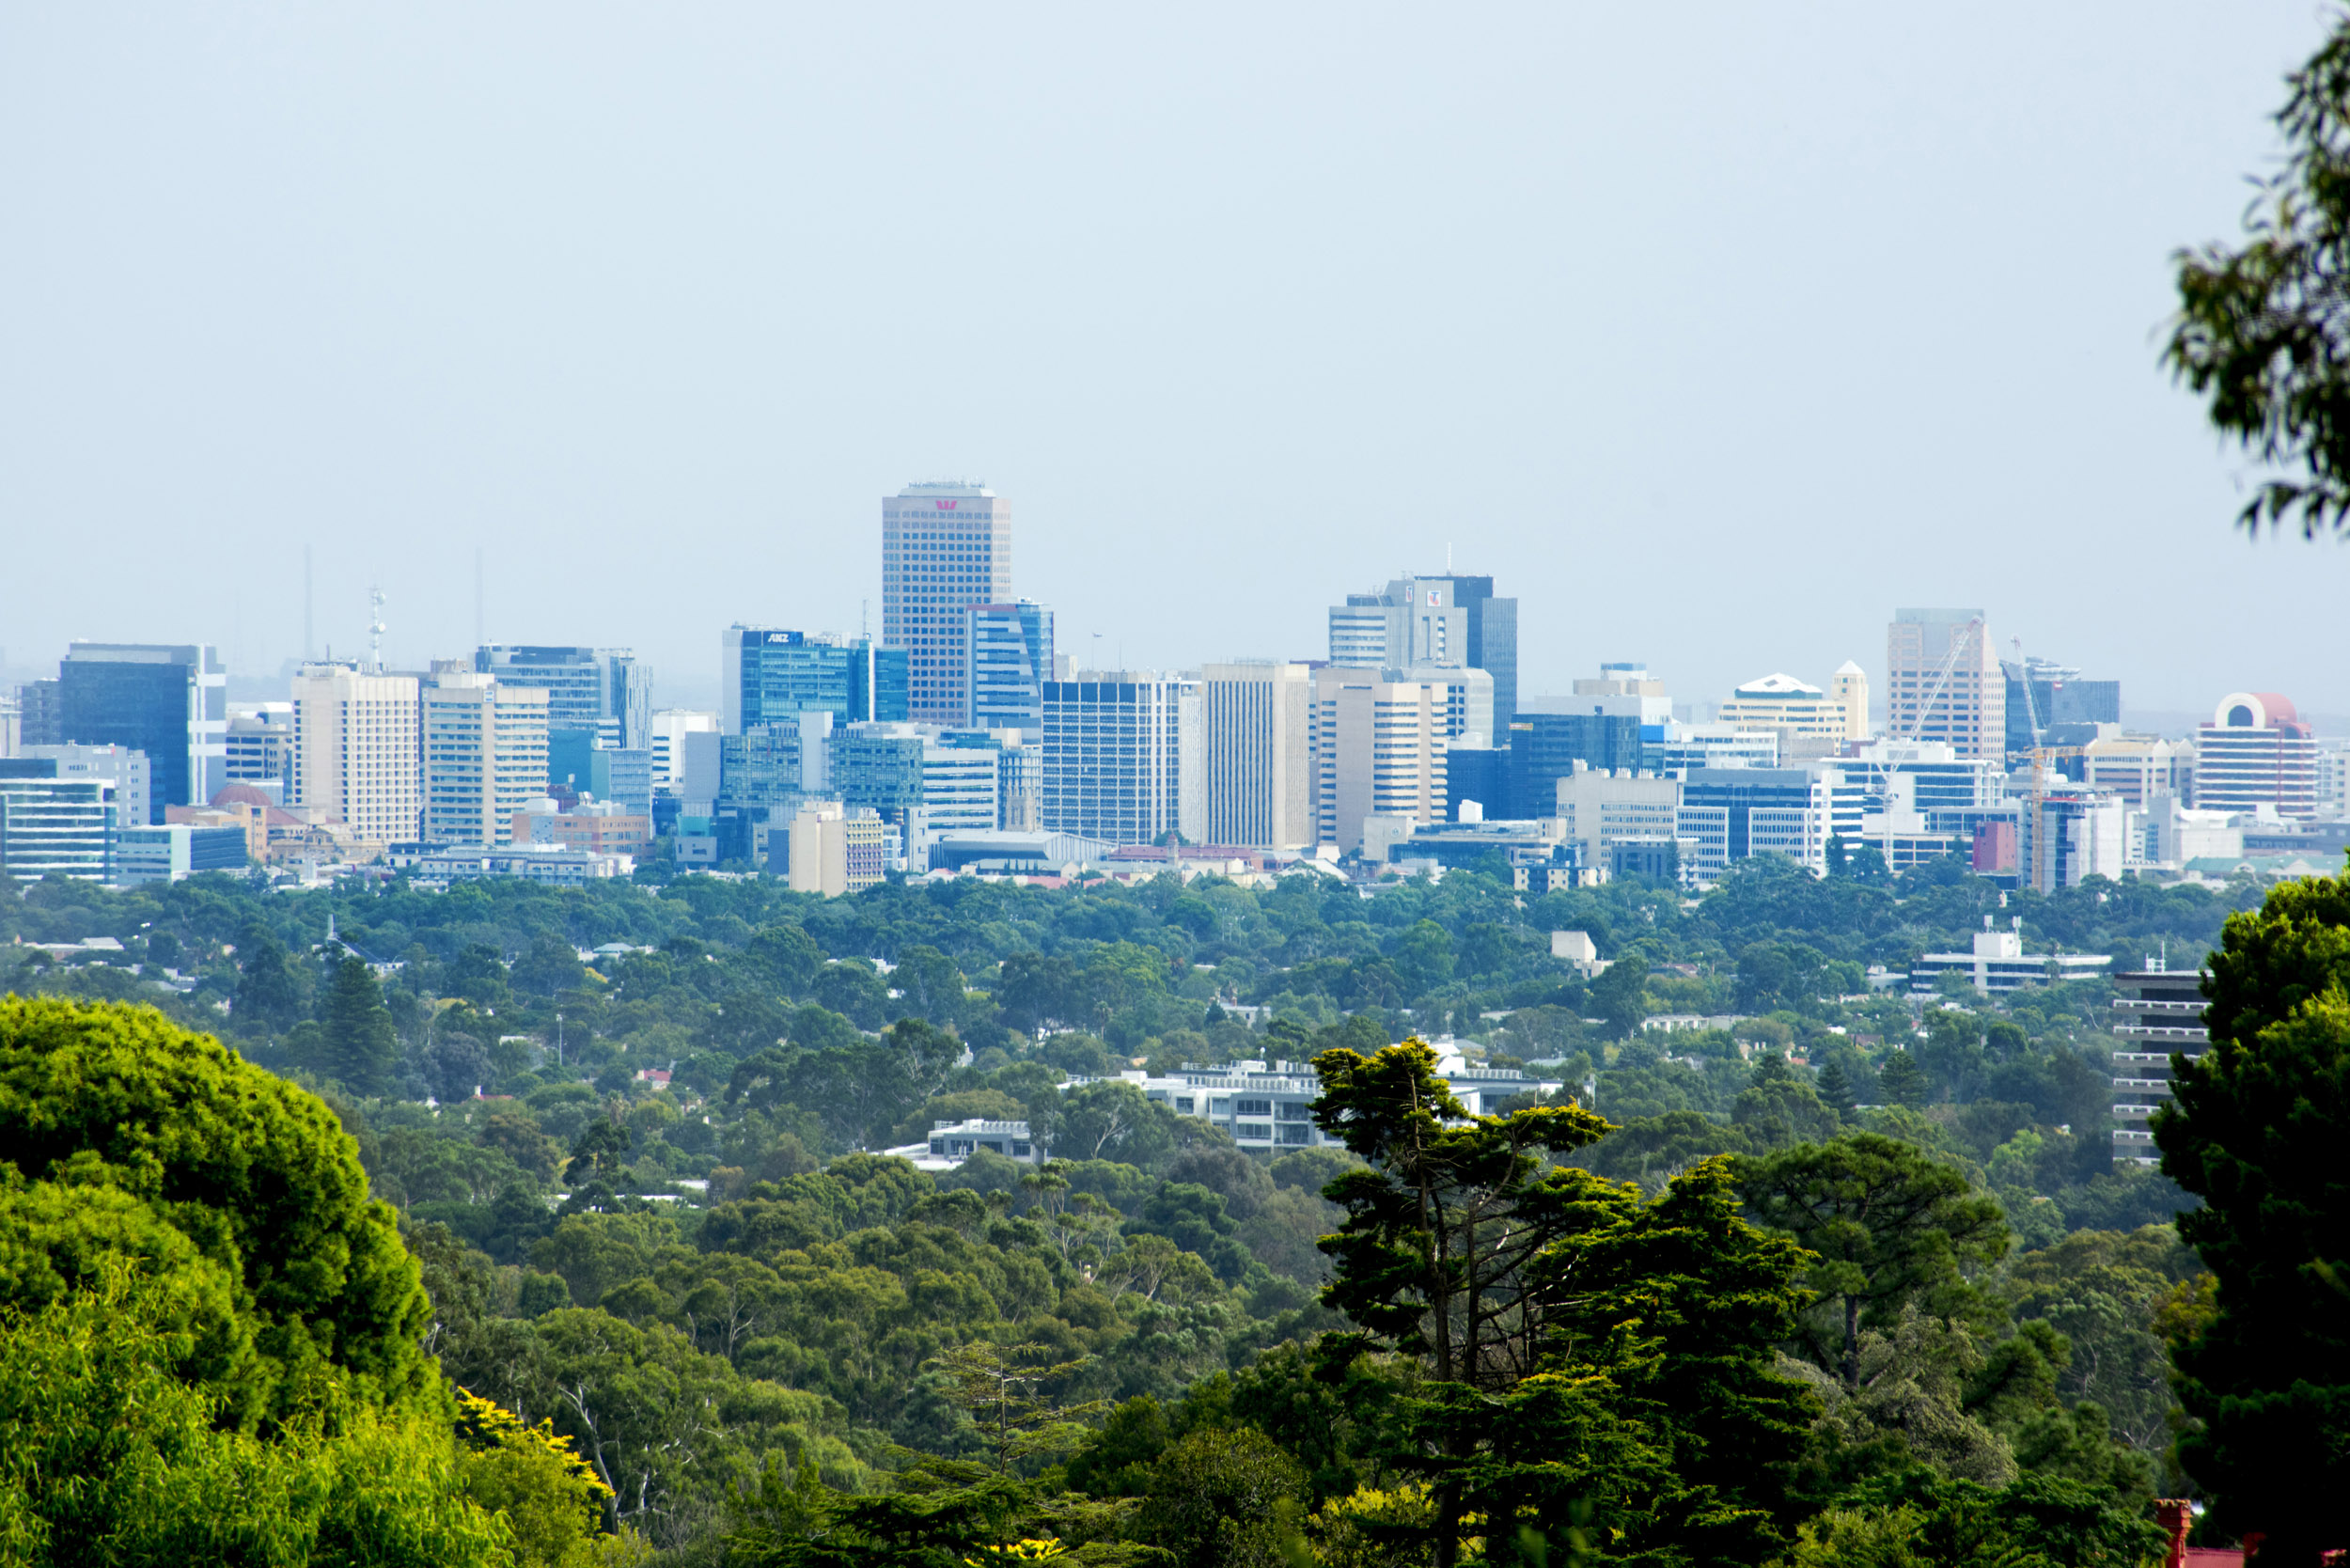 A panoramic view from the lush forest of the Adelaide hills over the tall skyscrapers of the city centre.